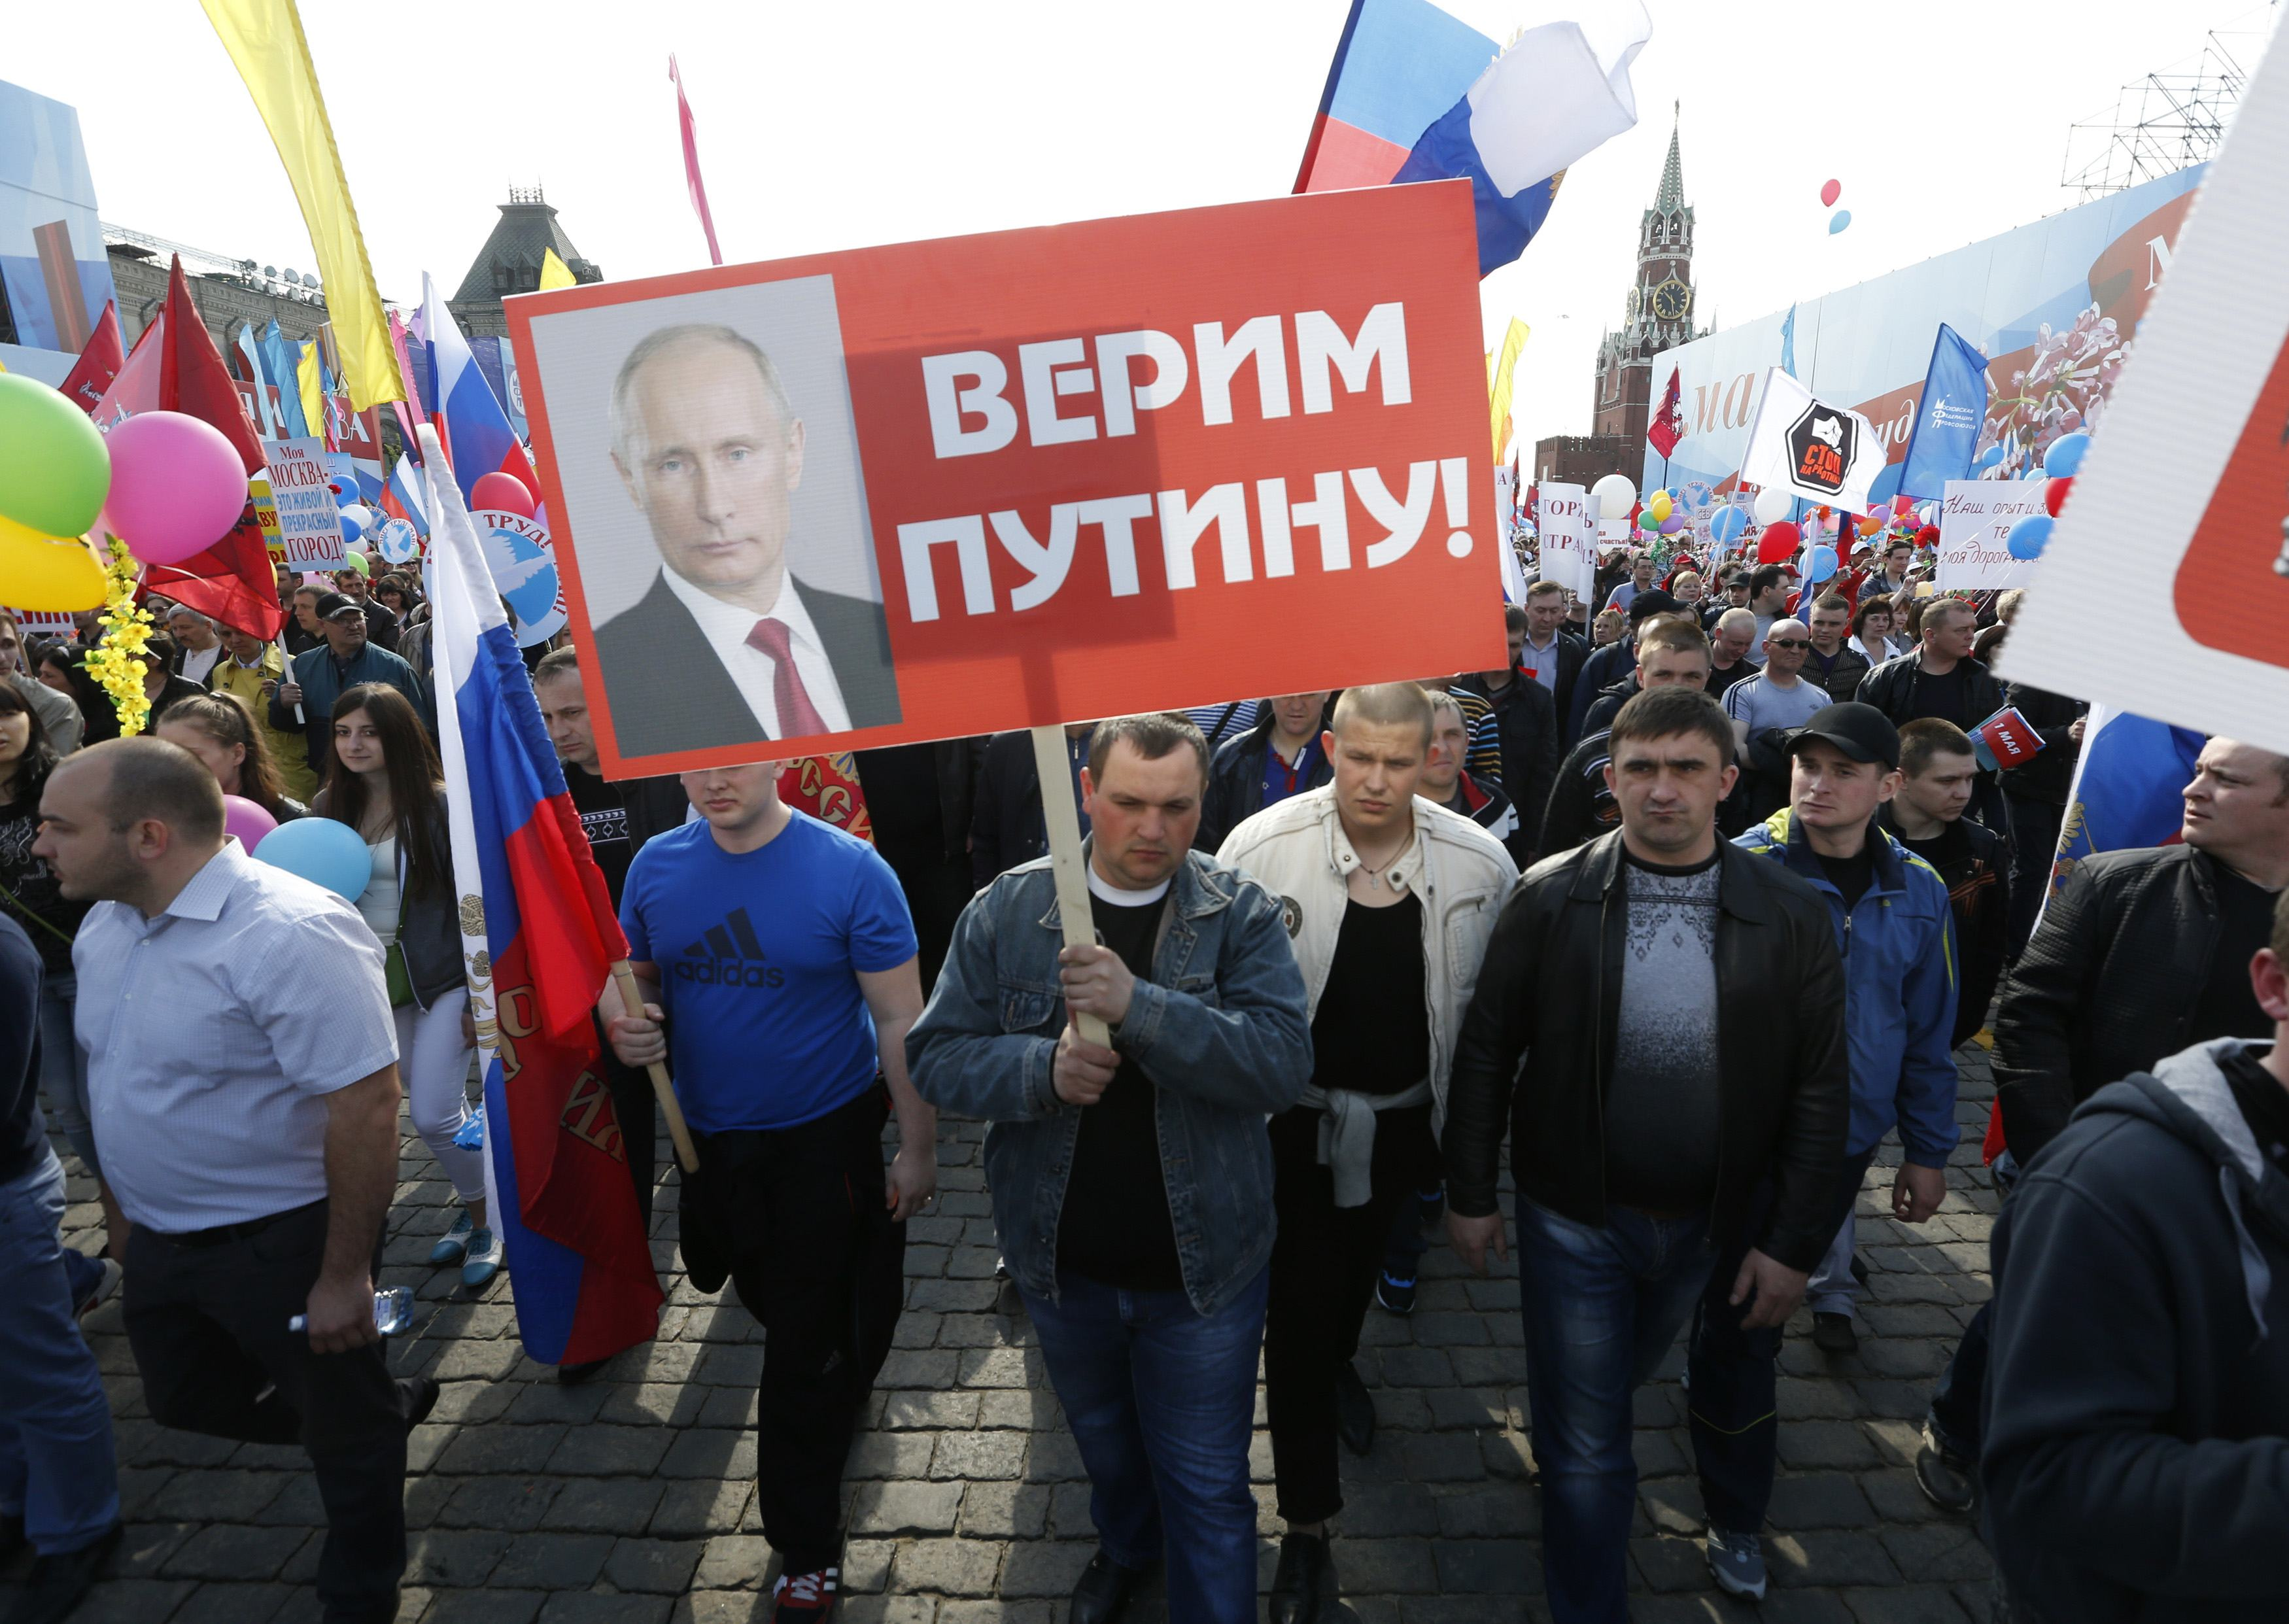 People walk through Red Square with flags and banners during a rally in Moscow